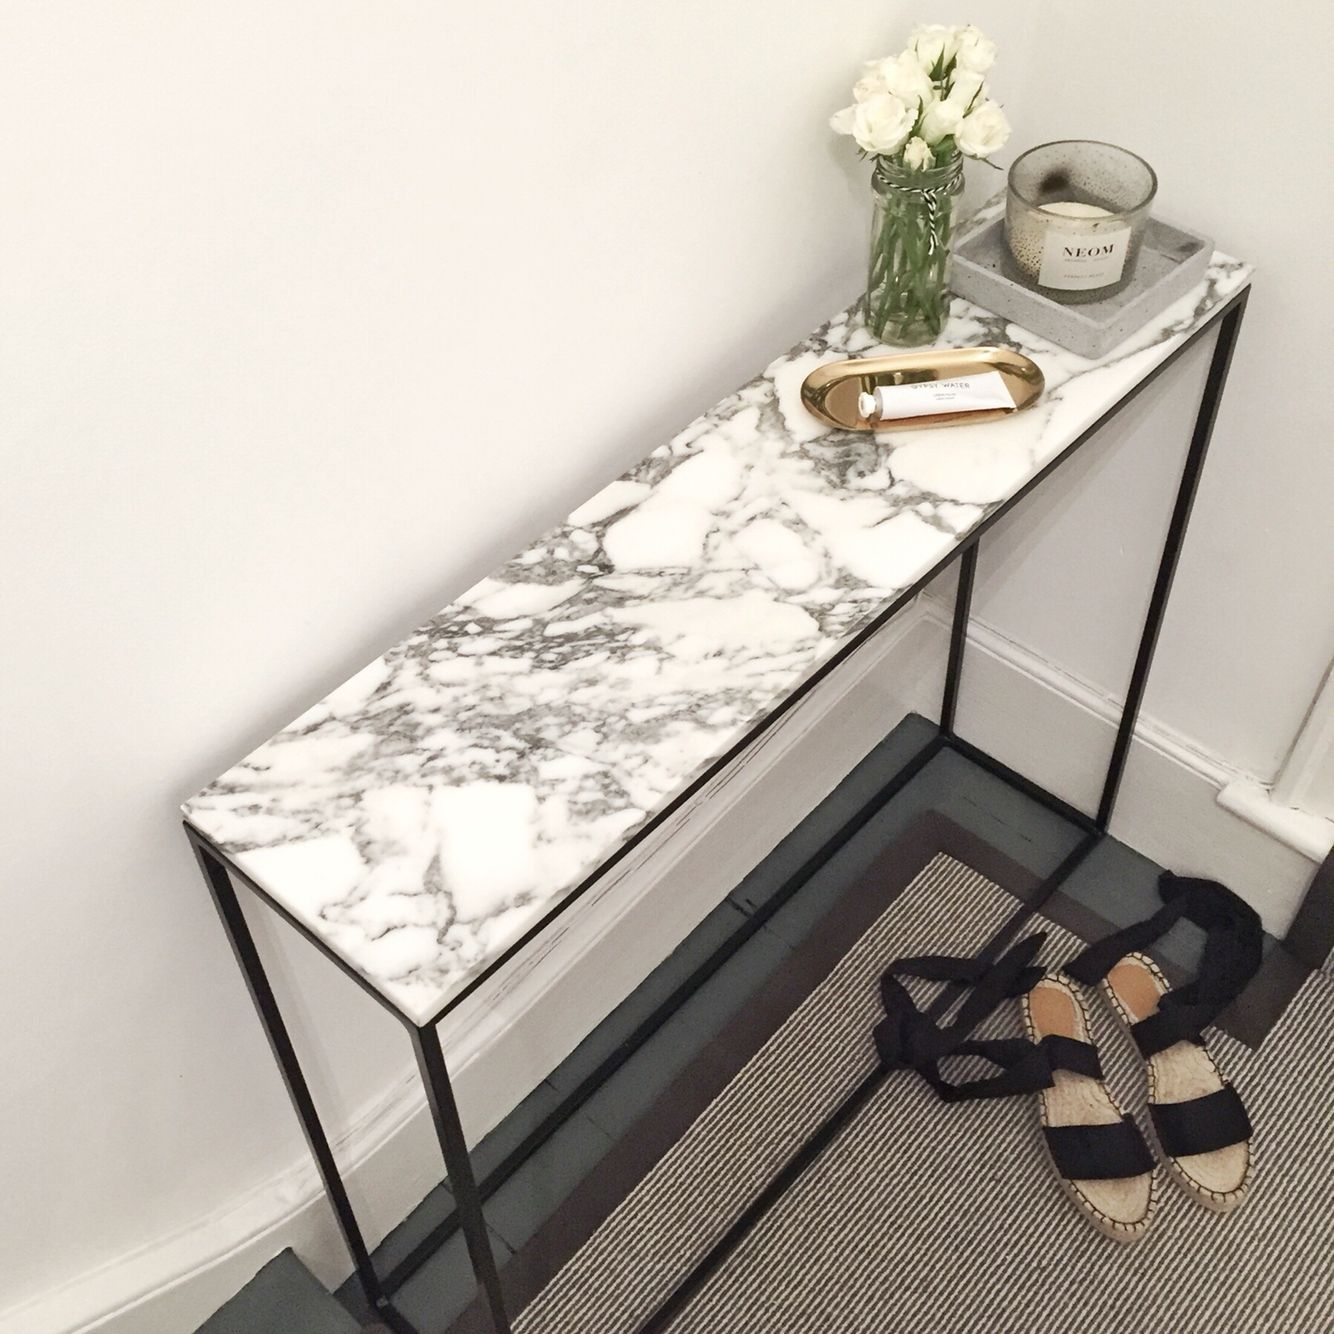 Modest But Chic Entryway Table The Frugality La Redoute Console Table Muebles De Entrada Decorar Entrada Casa Mesas Con Marmol